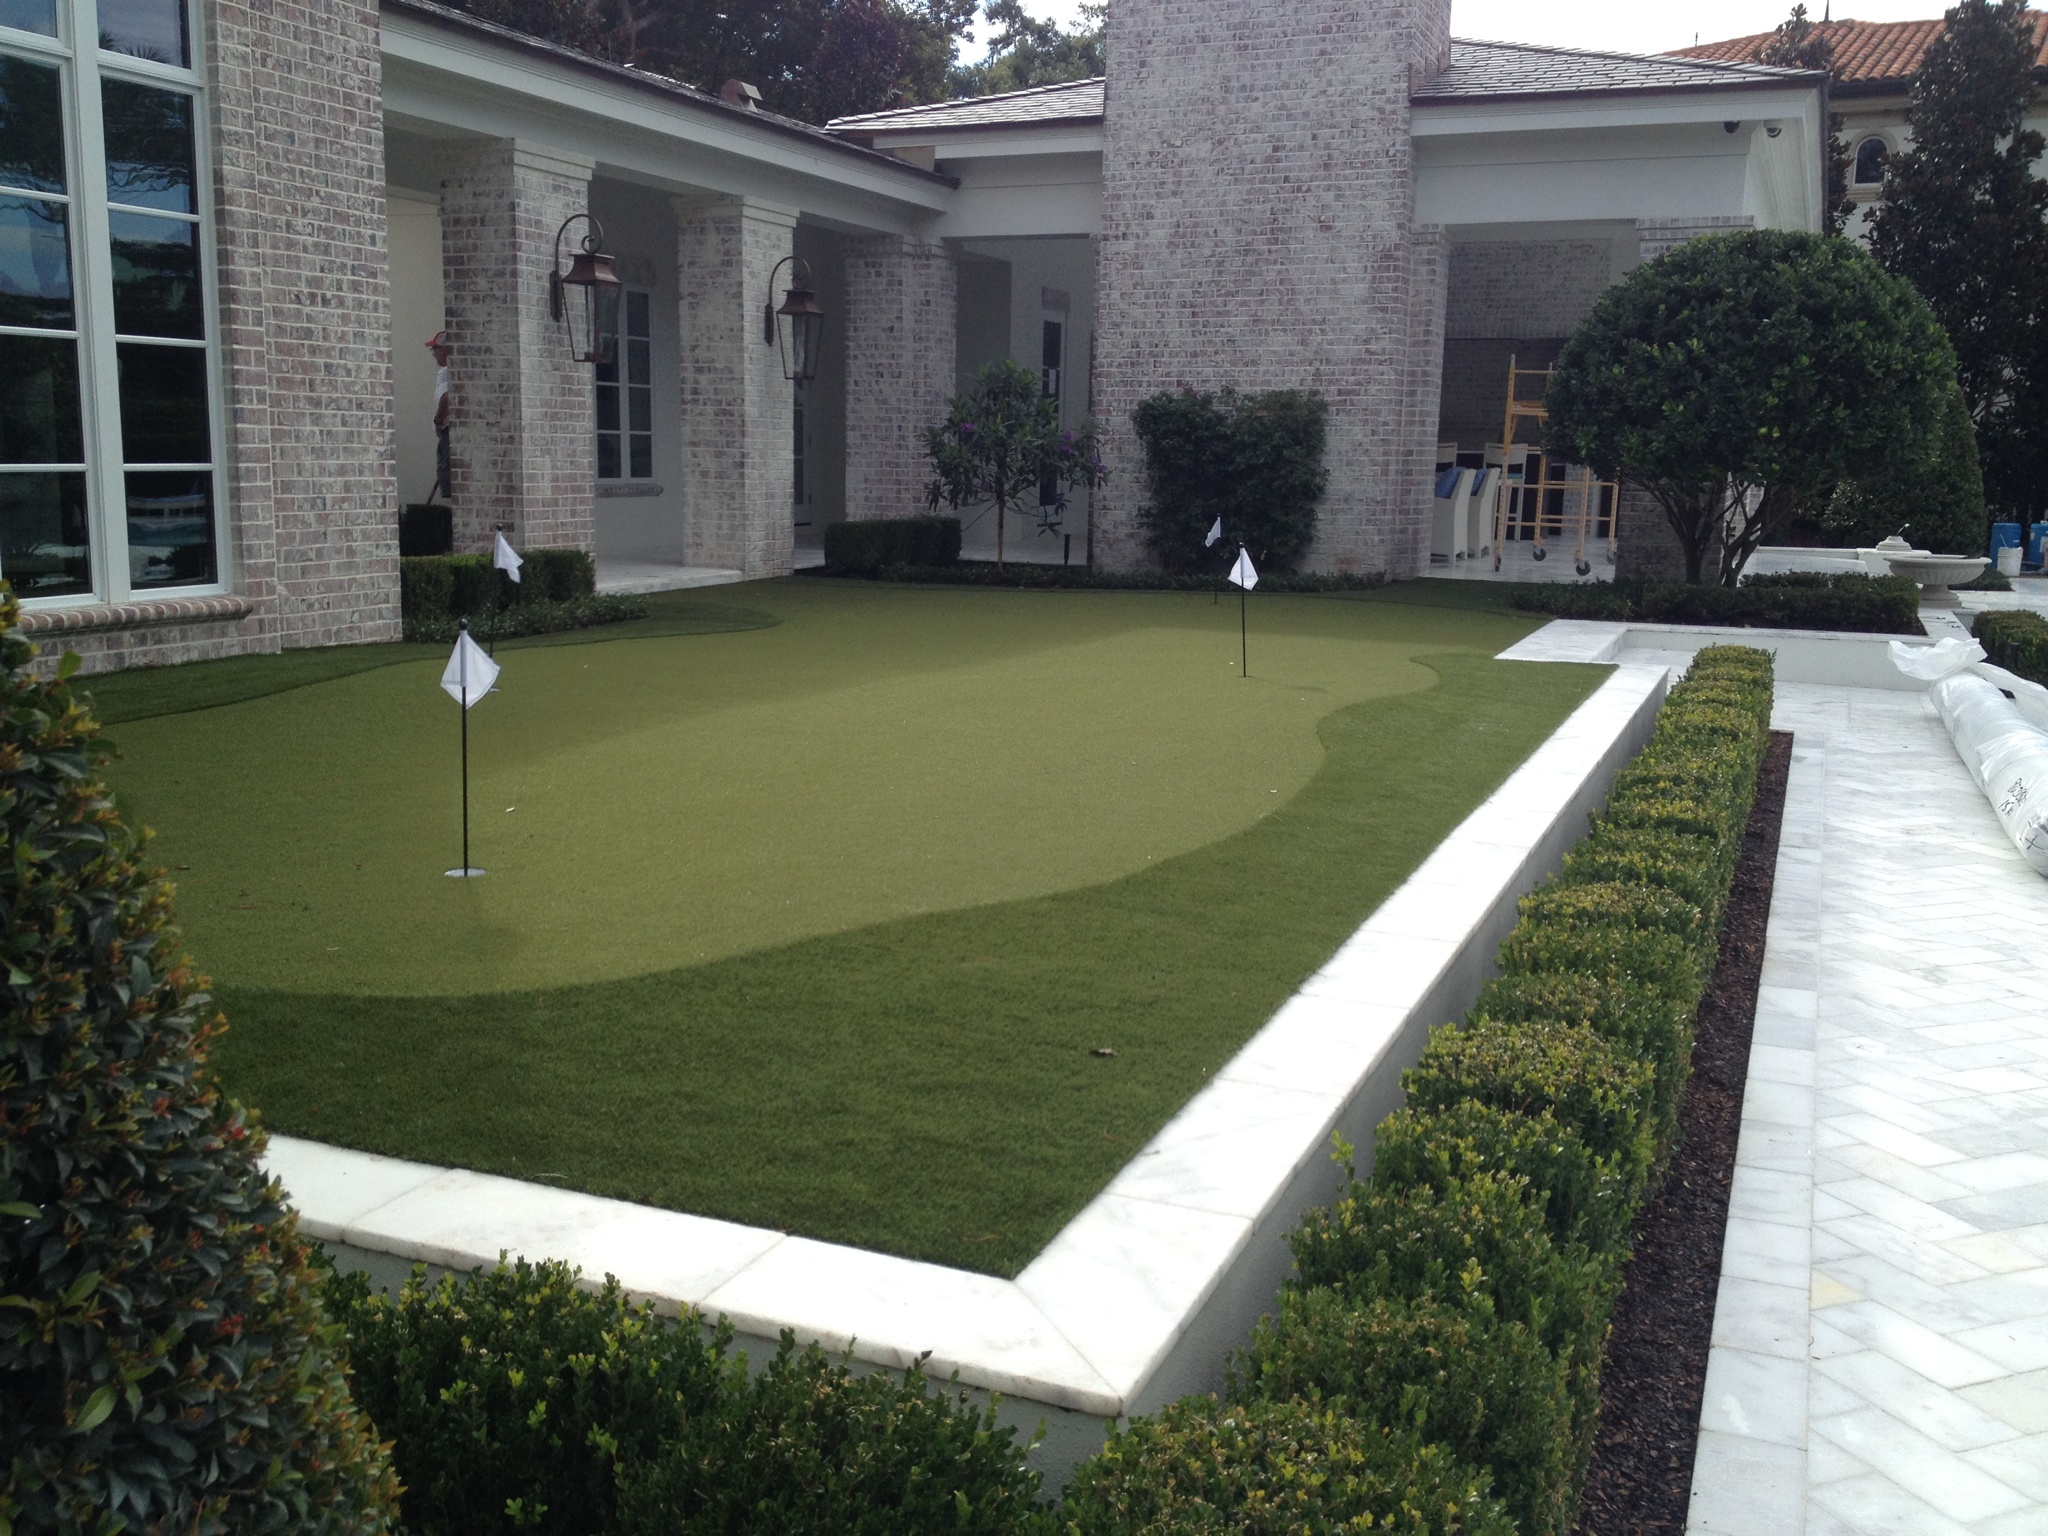 medium size golf green and fringe by stone house